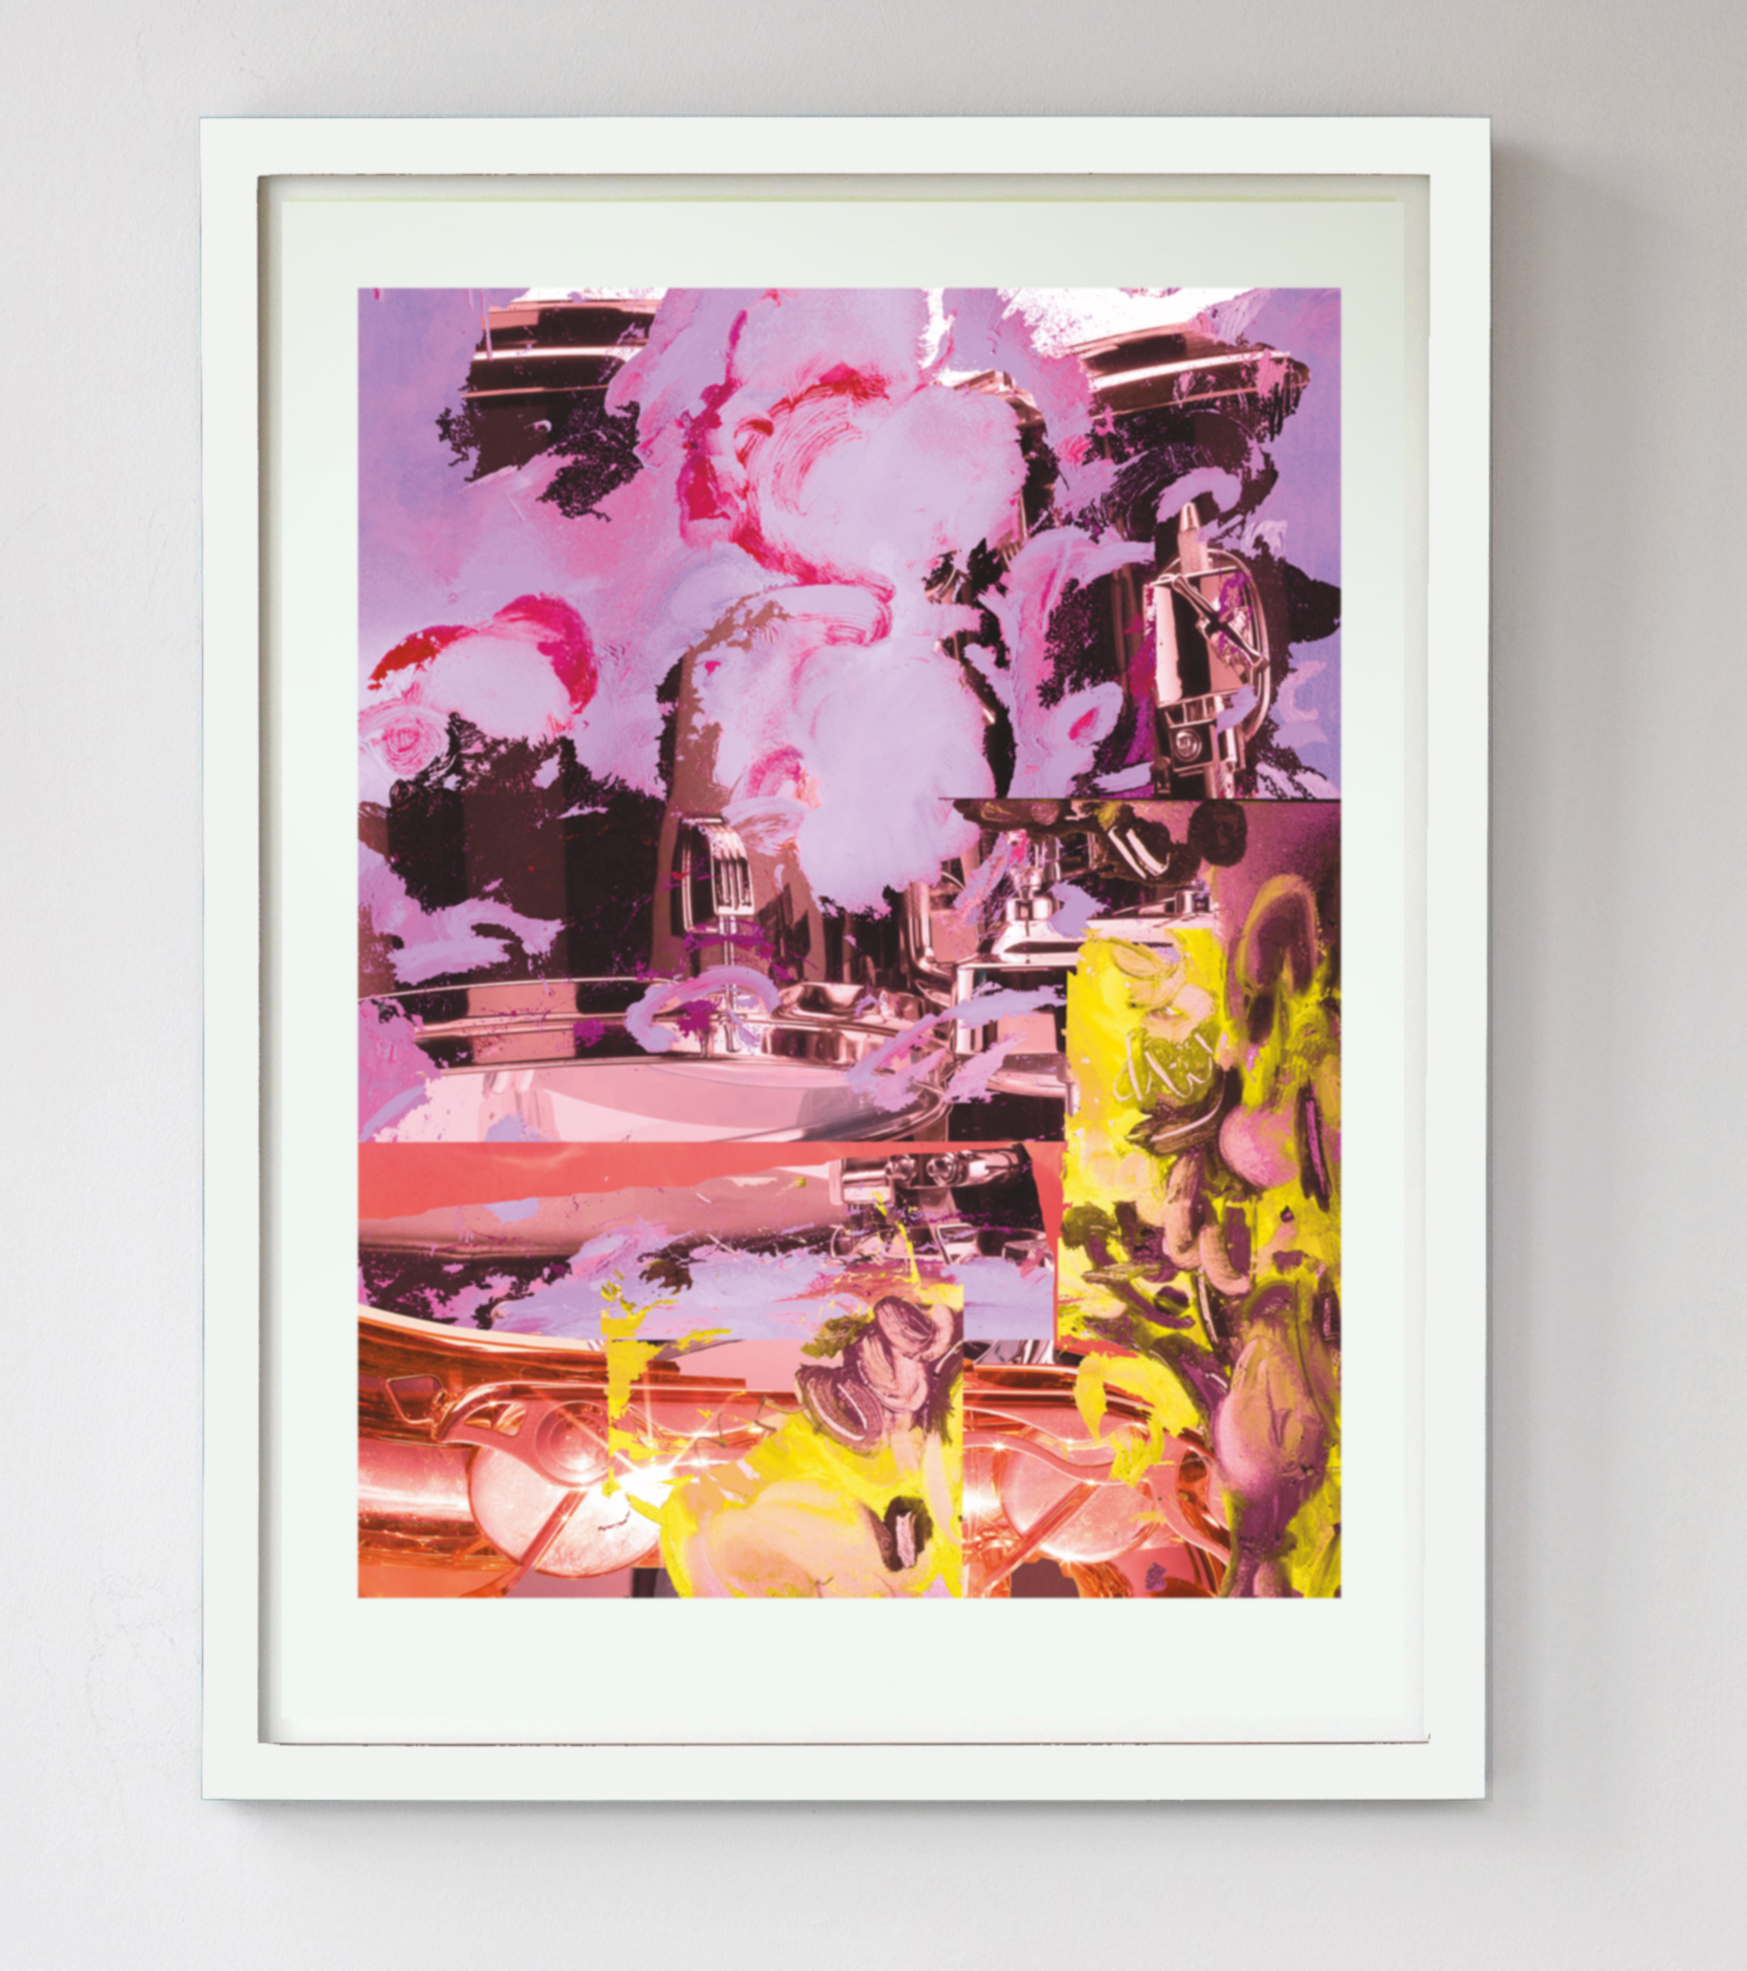 Edwin Burdis, How pink is my valley, 2017. Inkjet print on heavyweight paper. Framed. 90 x 114 cm.